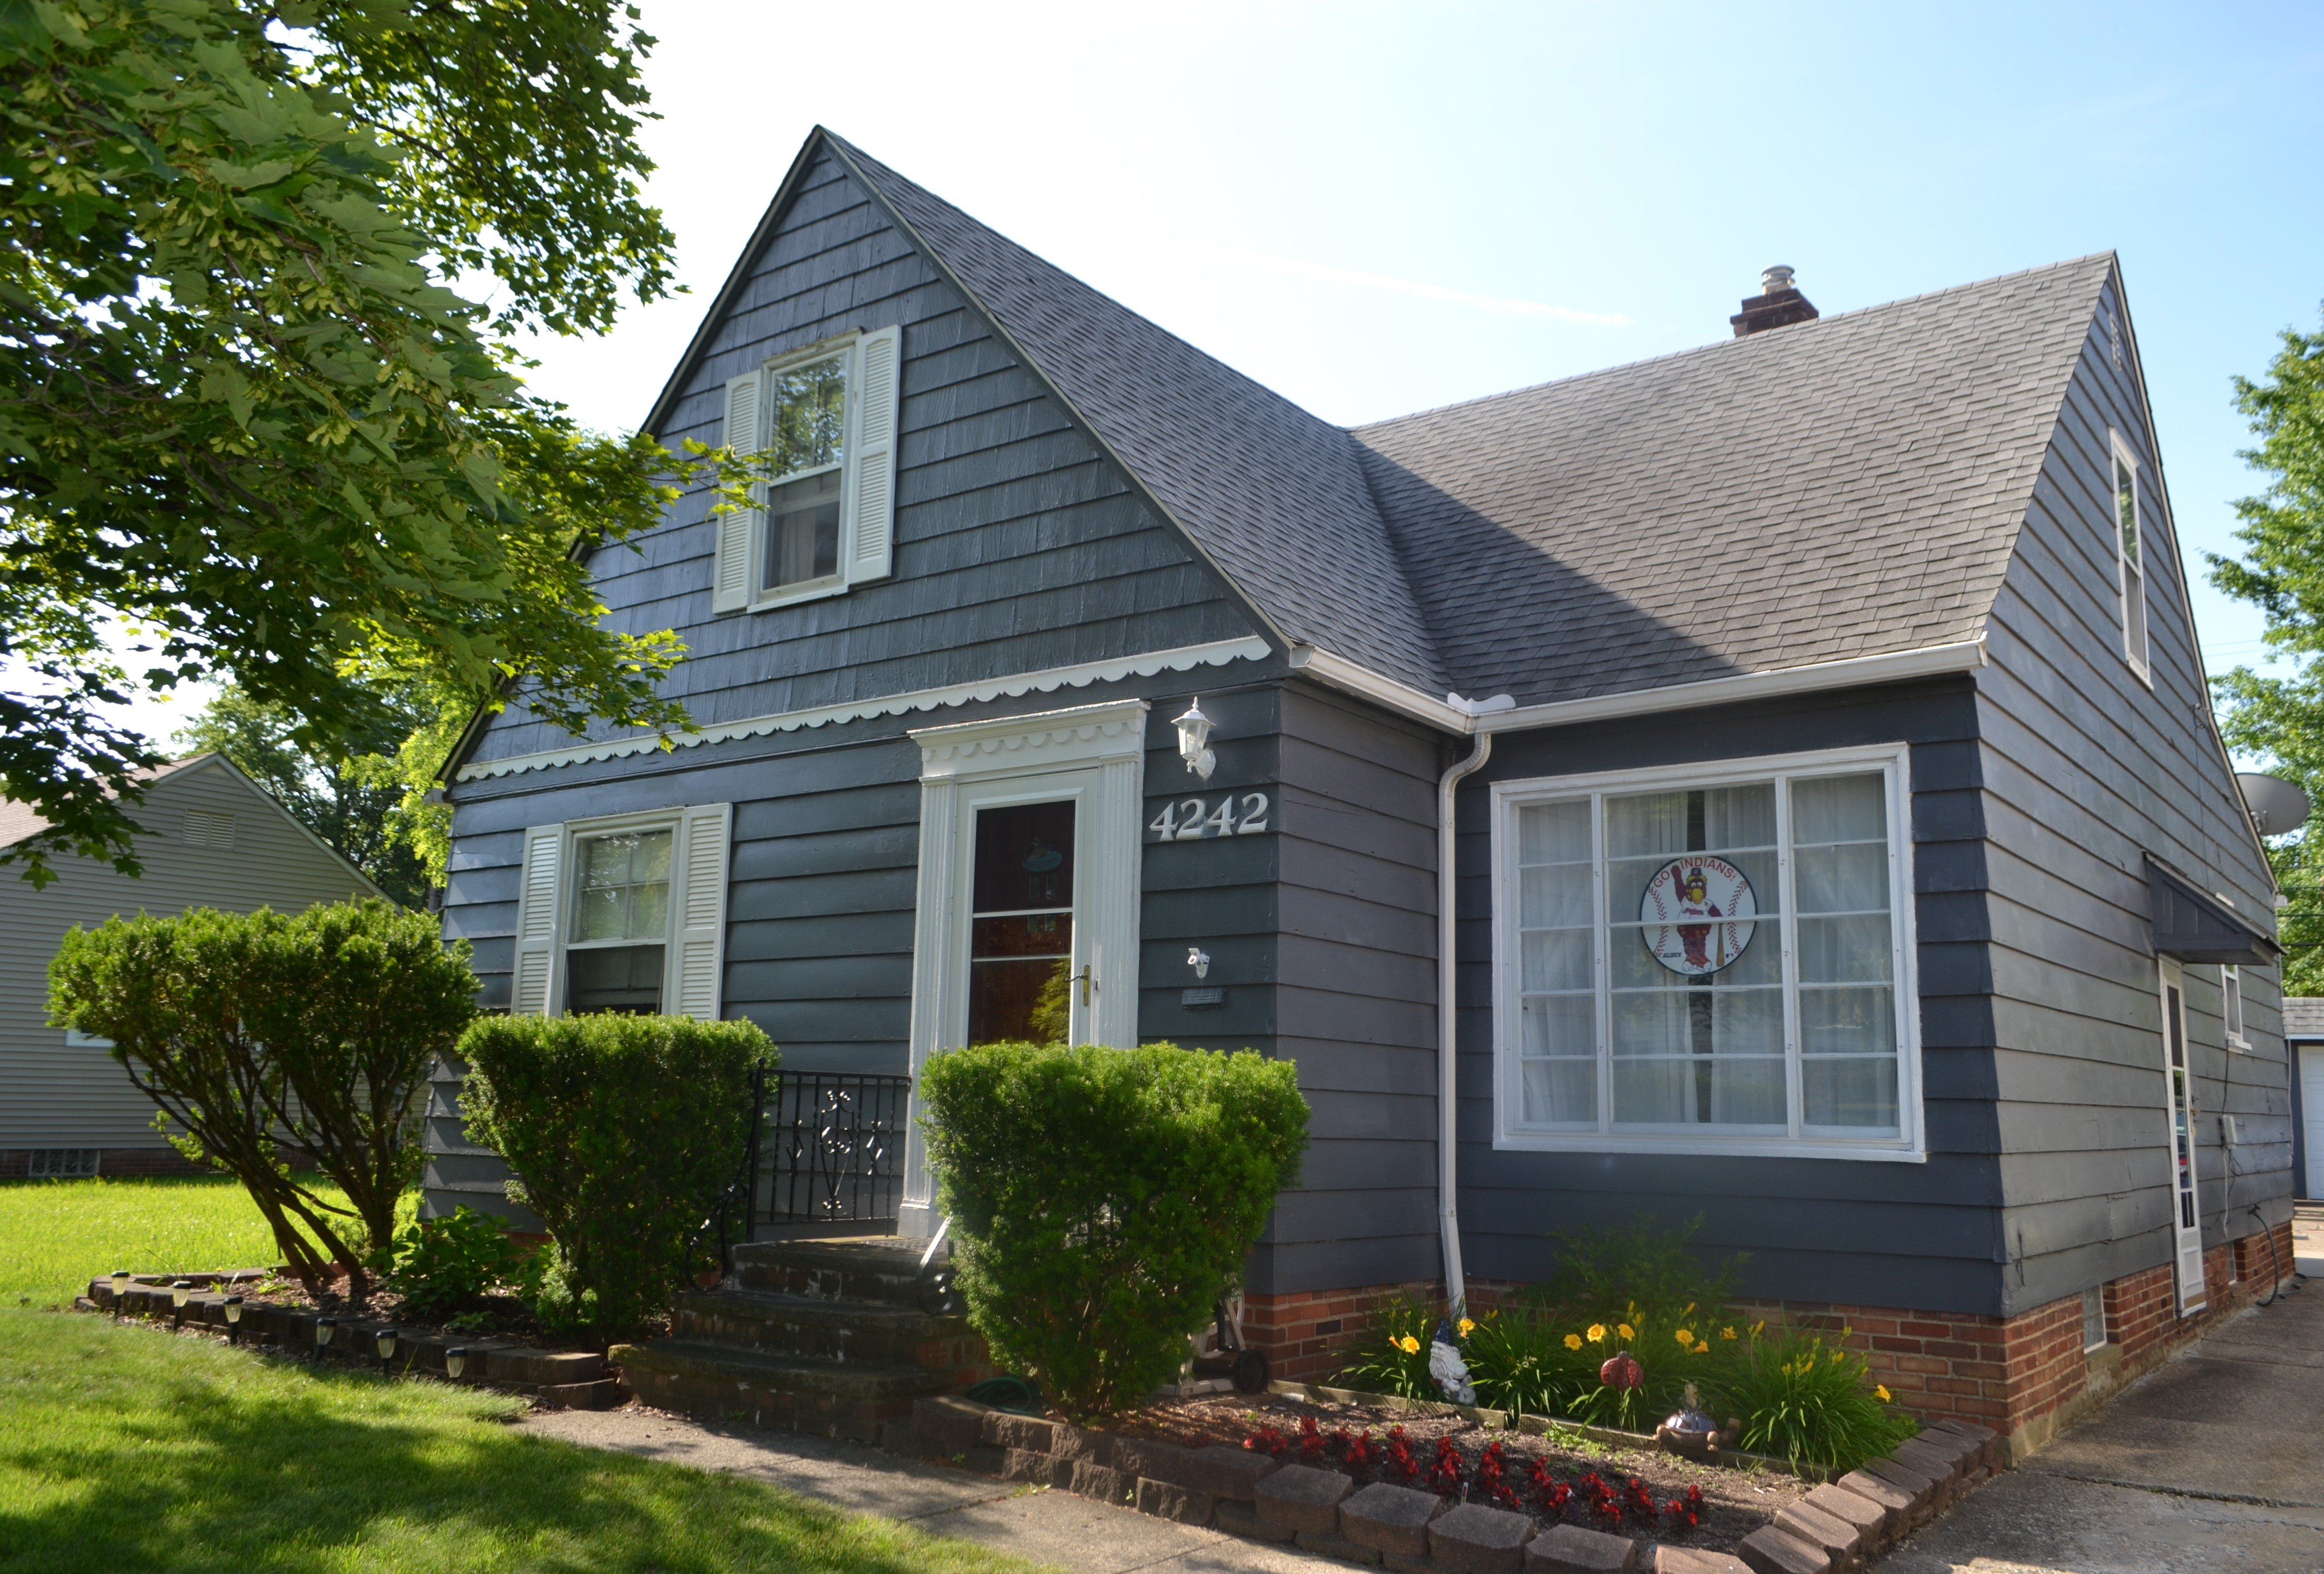 South Euclid, OH –$63,000